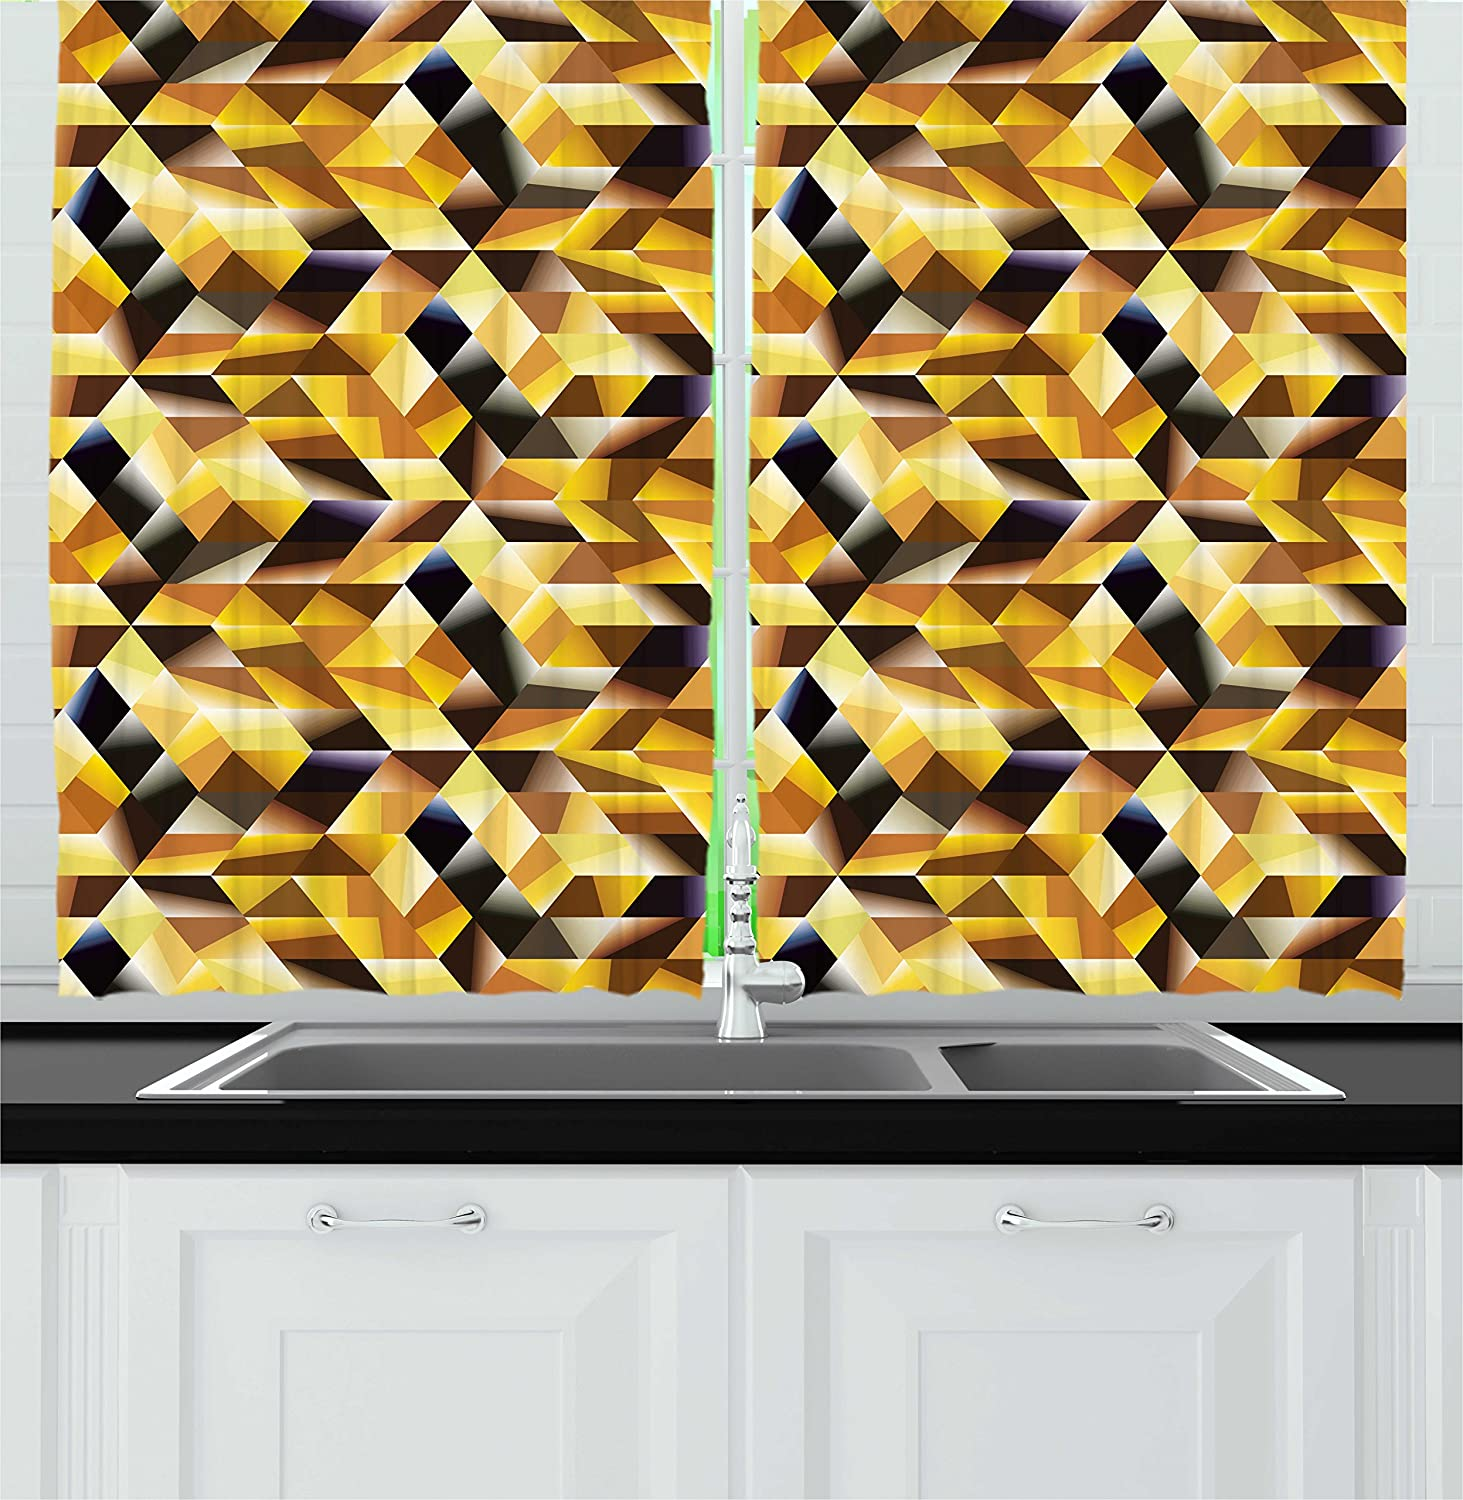 Amazon Com Ambesonne Abstract Kitchen Curtains Cubes And Blocks Form Abstract Style Geometric Digital Graphic Art Pattern Window Drapes 2 Panel Set For Kitchen Cafe Decor 55 X 39 Black Yellow Brown Home